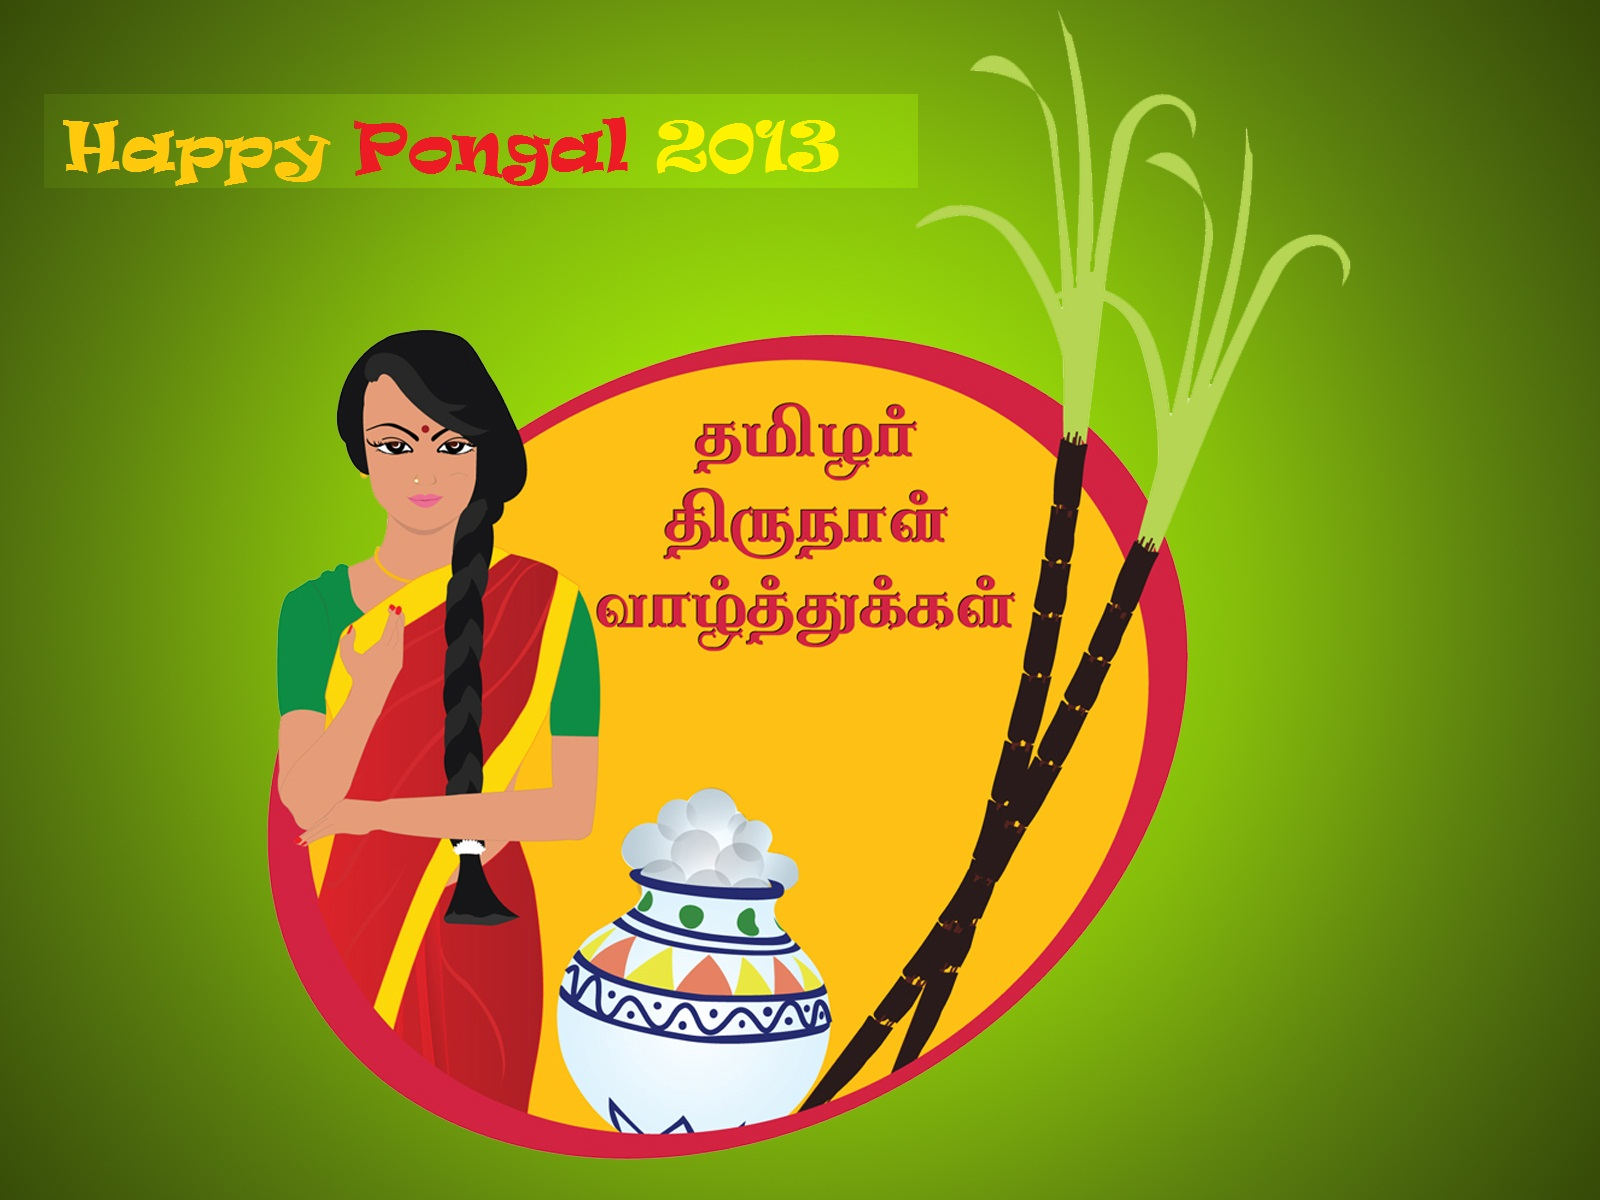 pongal thirunal essay in tamil Pongal is celebrated in all over the world by tamils pongal is a festival of farmers it is called as uzhavar thirunaal subscribe to oneindia tamil.